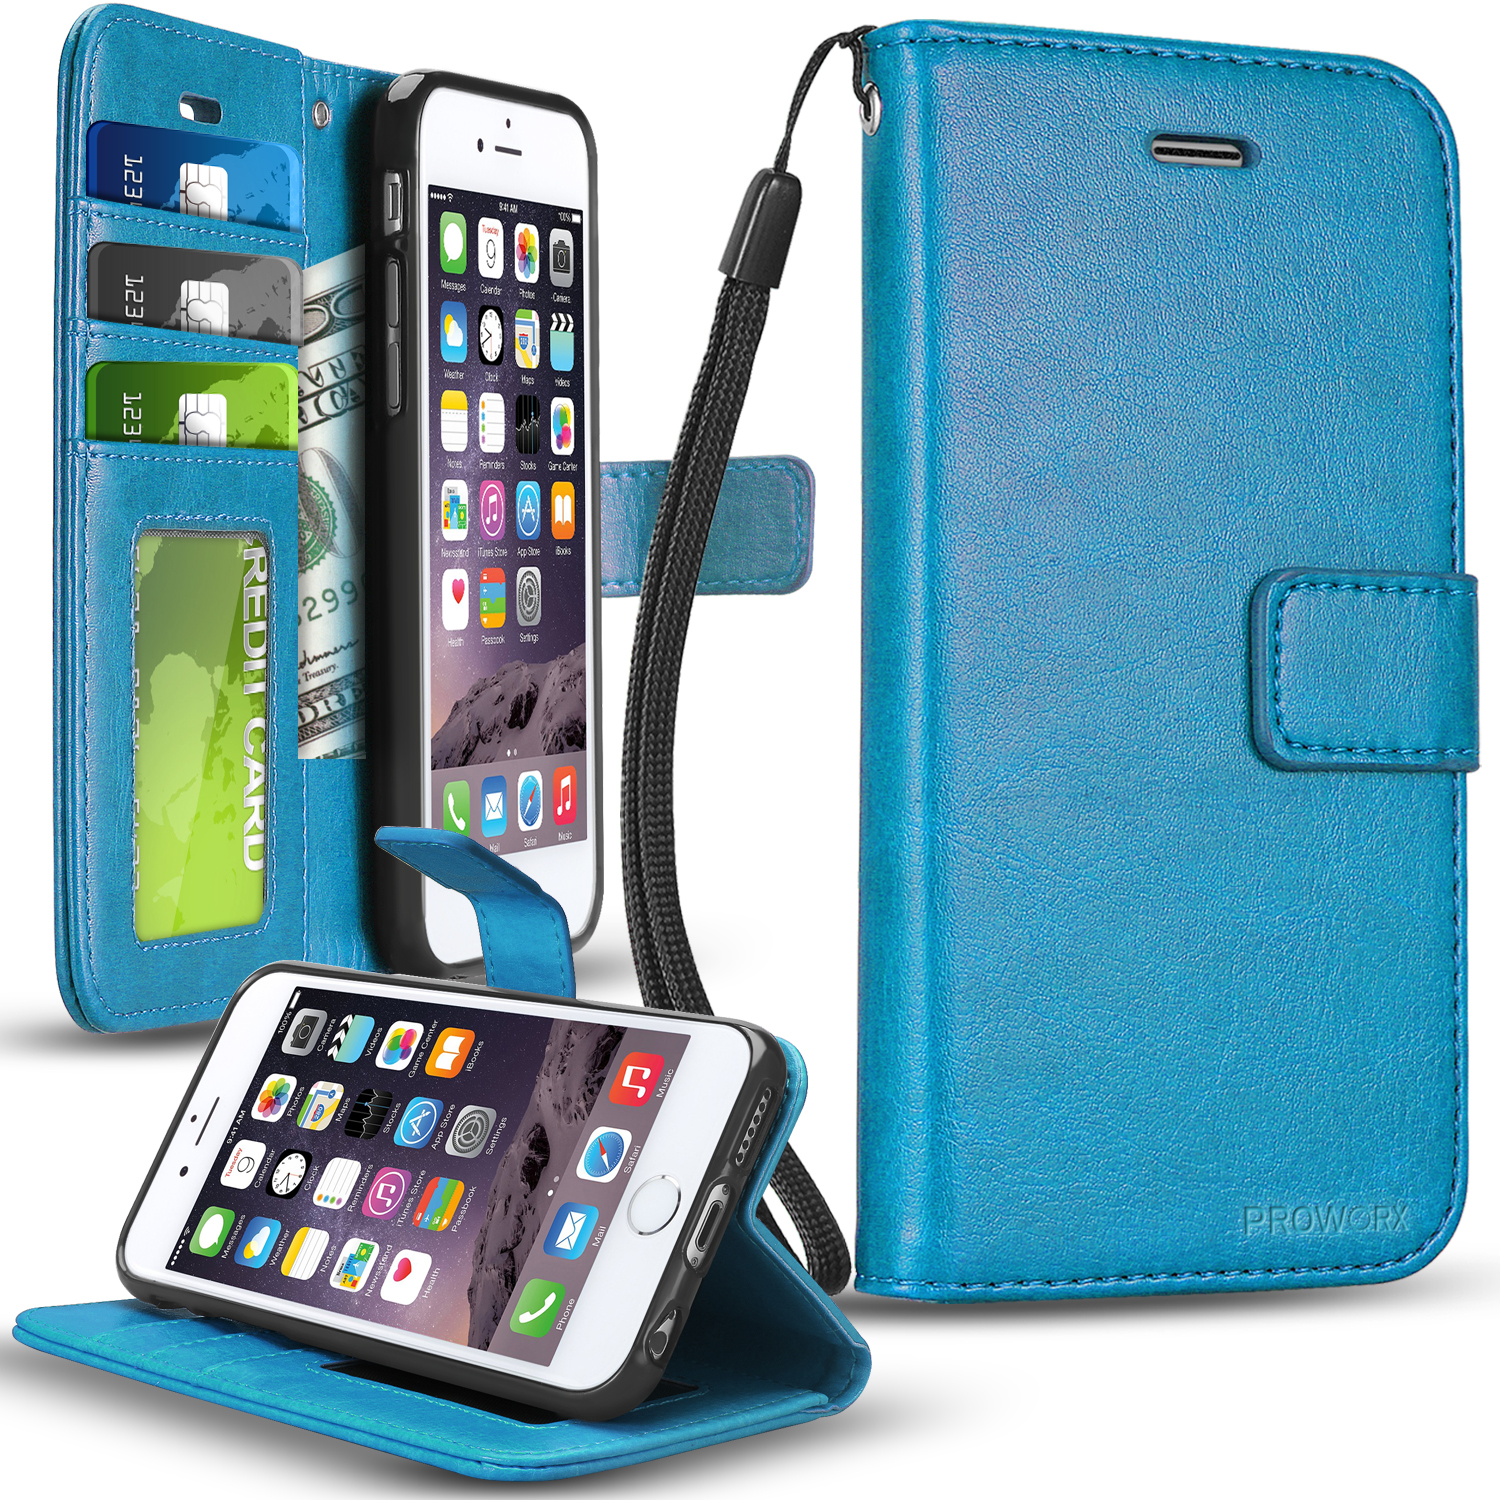 Apple iPhone 6 6S (4.7) Baby Blue ProWorx Wallet Case Luxury PU Leather Case Cover With Card Slots & Stand